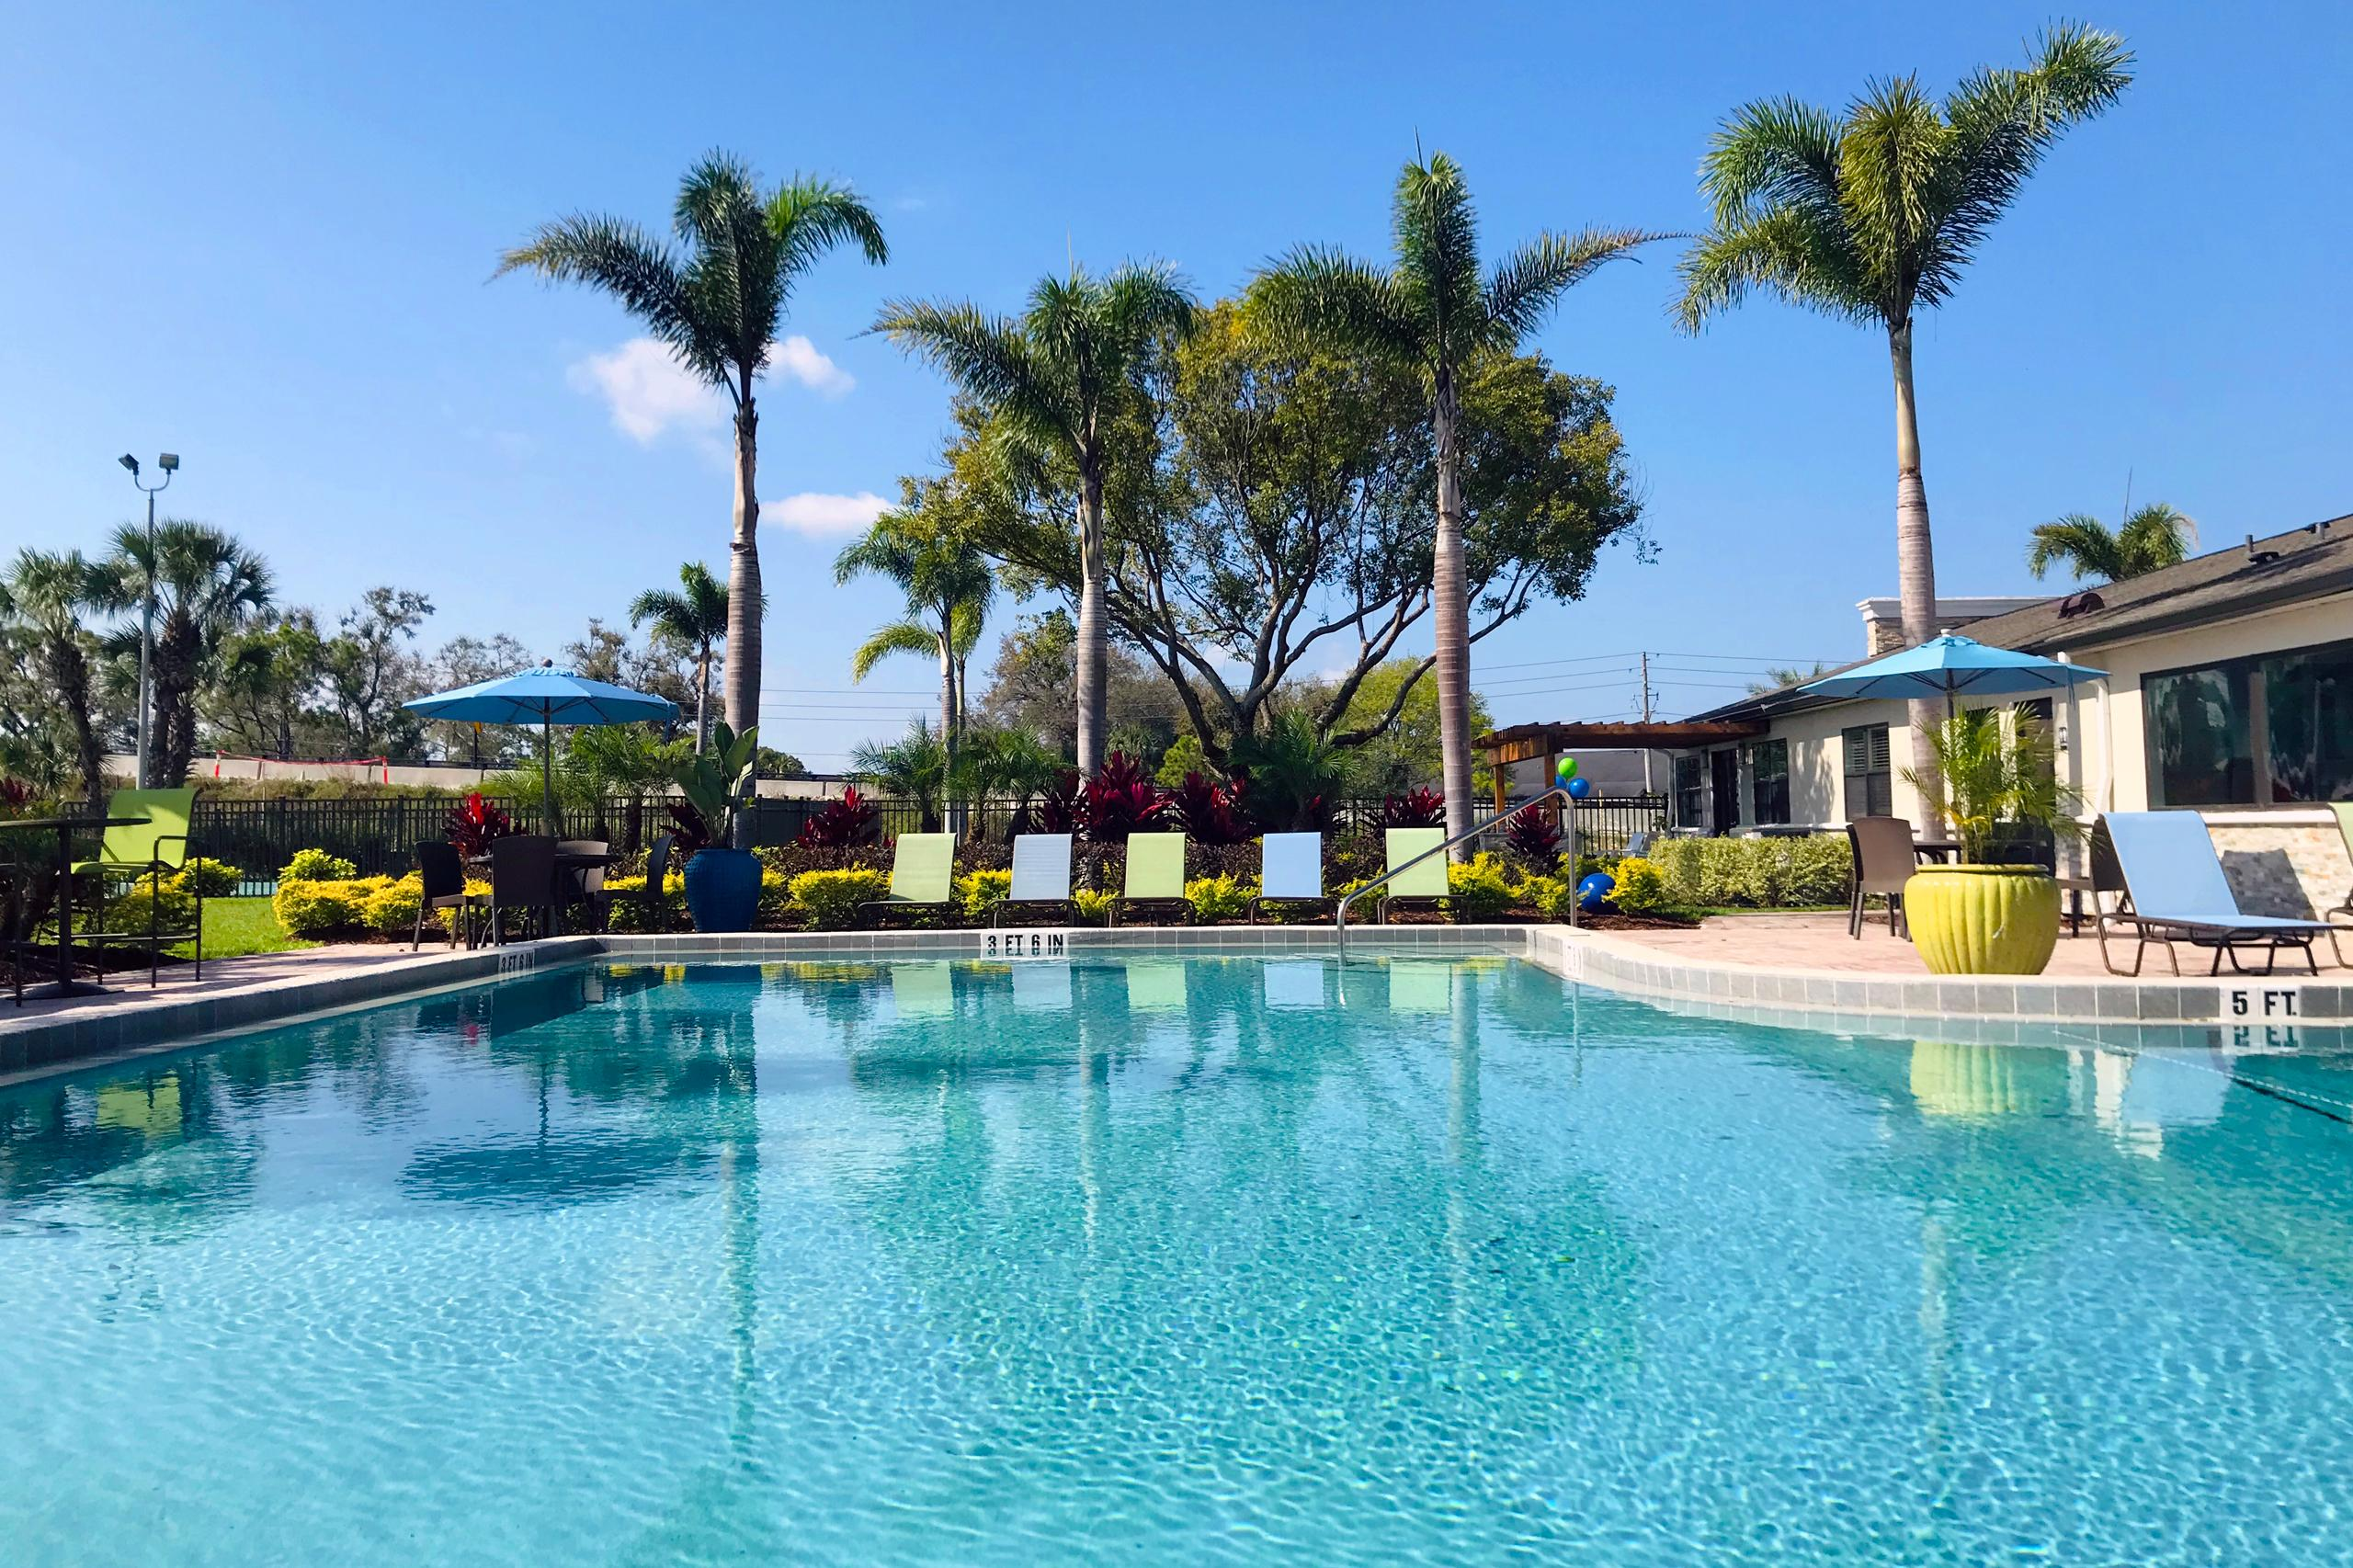 Apartments in Orlando FL for Rent